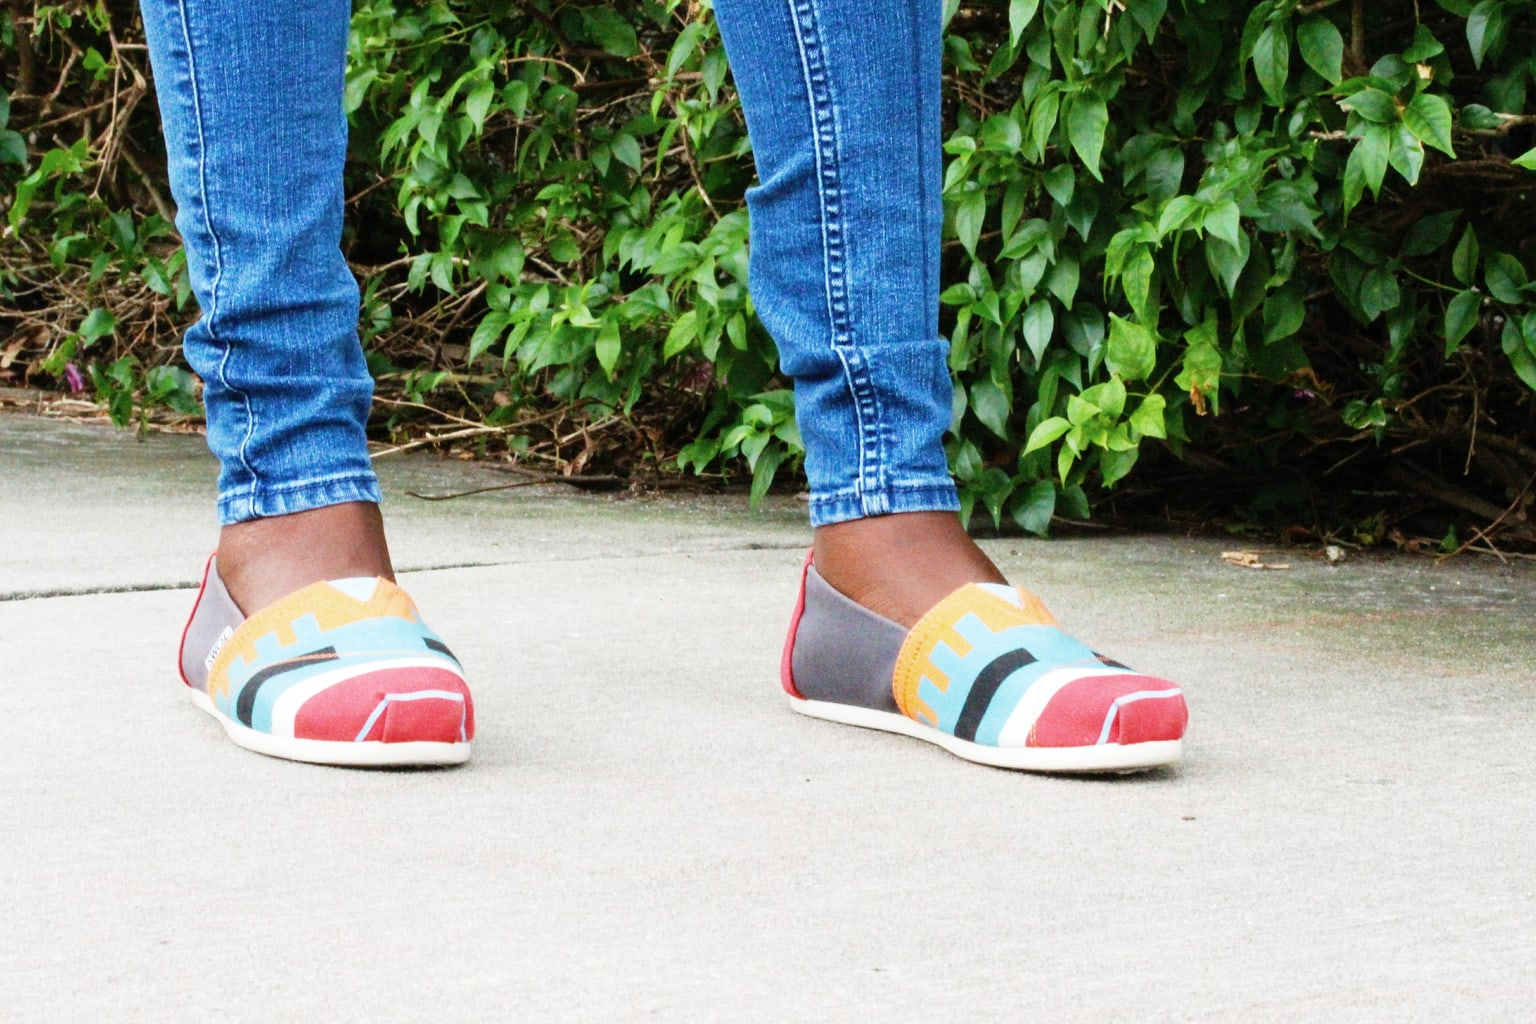 Uchoku wears bright blue, yellow, white, gray, and red Toms sneakers with straight-leg denim jeans.